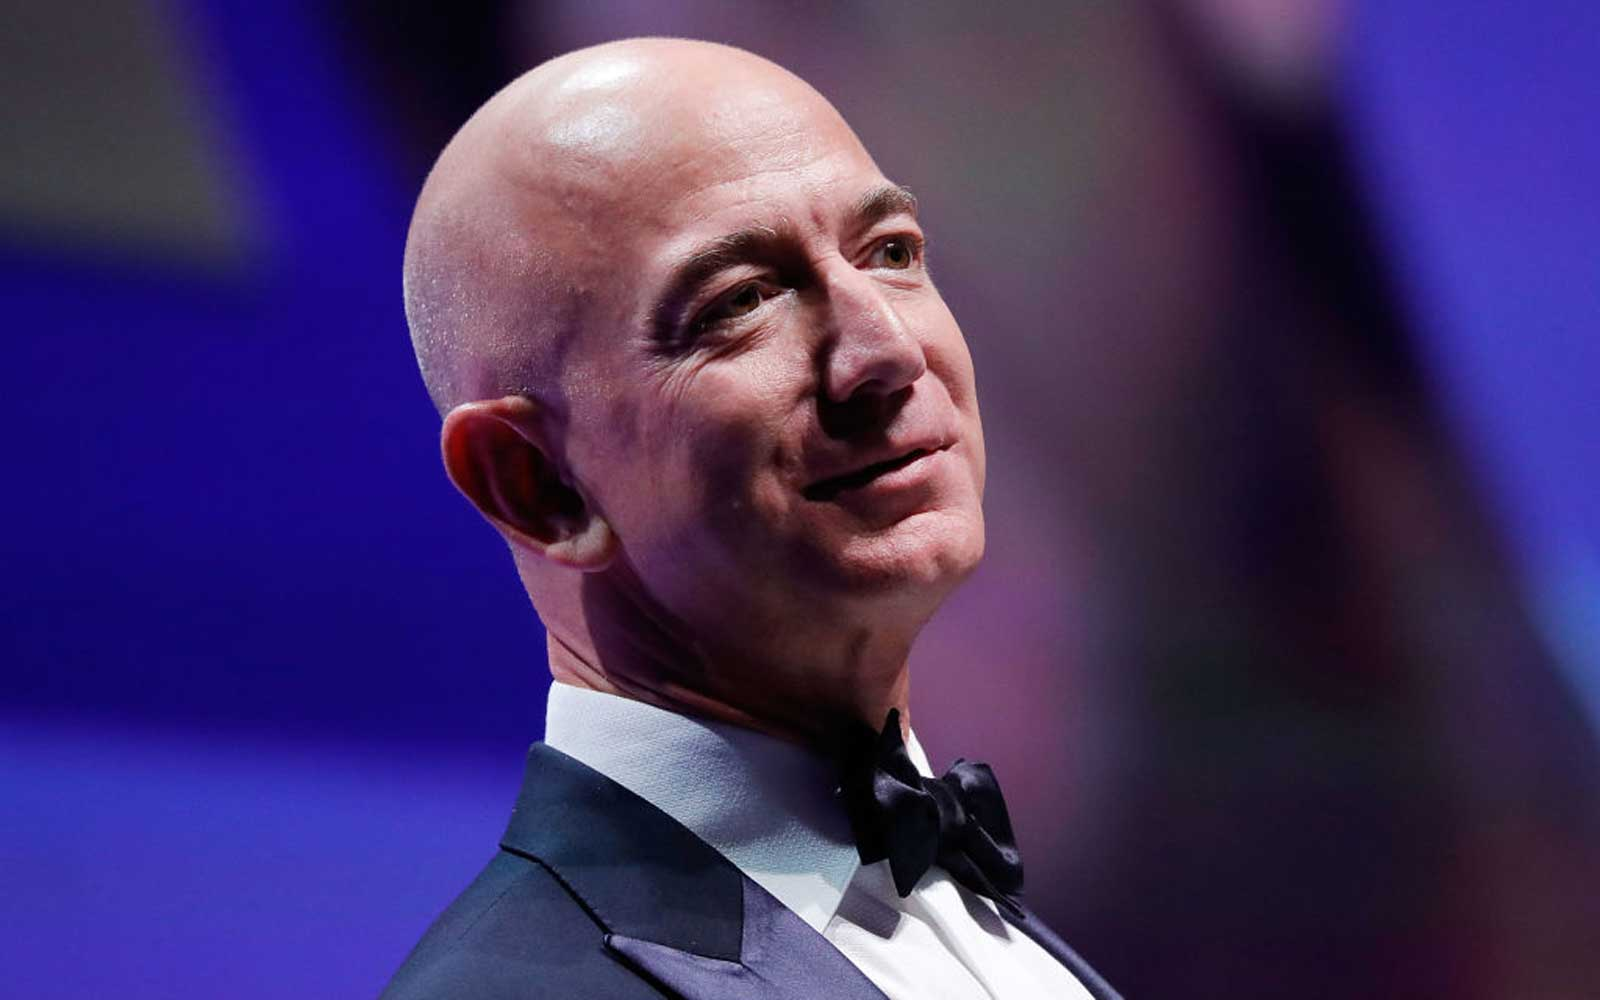 How to Be Successful, According to Jeff Bezos